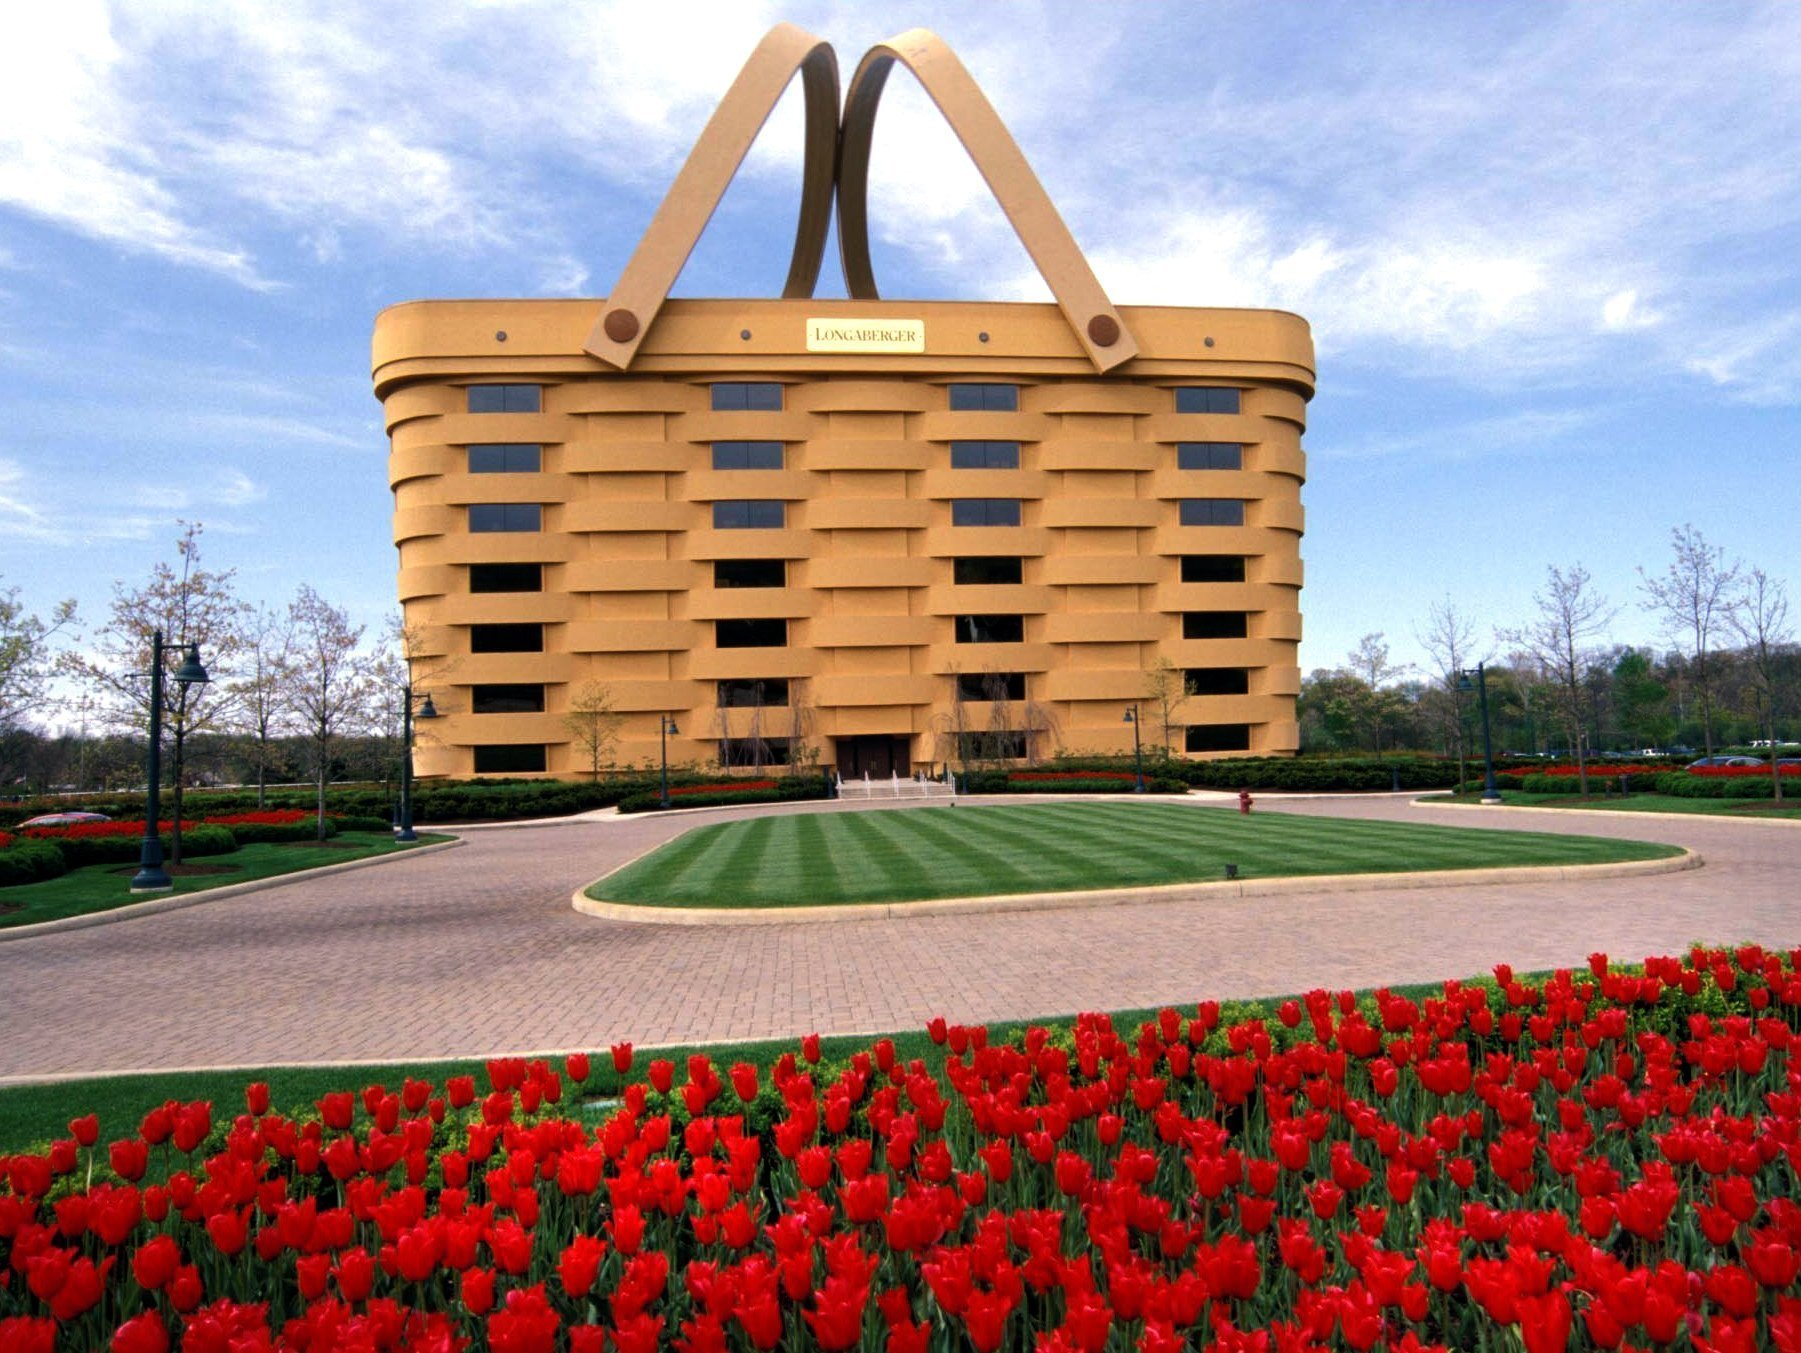 The Weirdest Building In America A Huge Picnic Basket